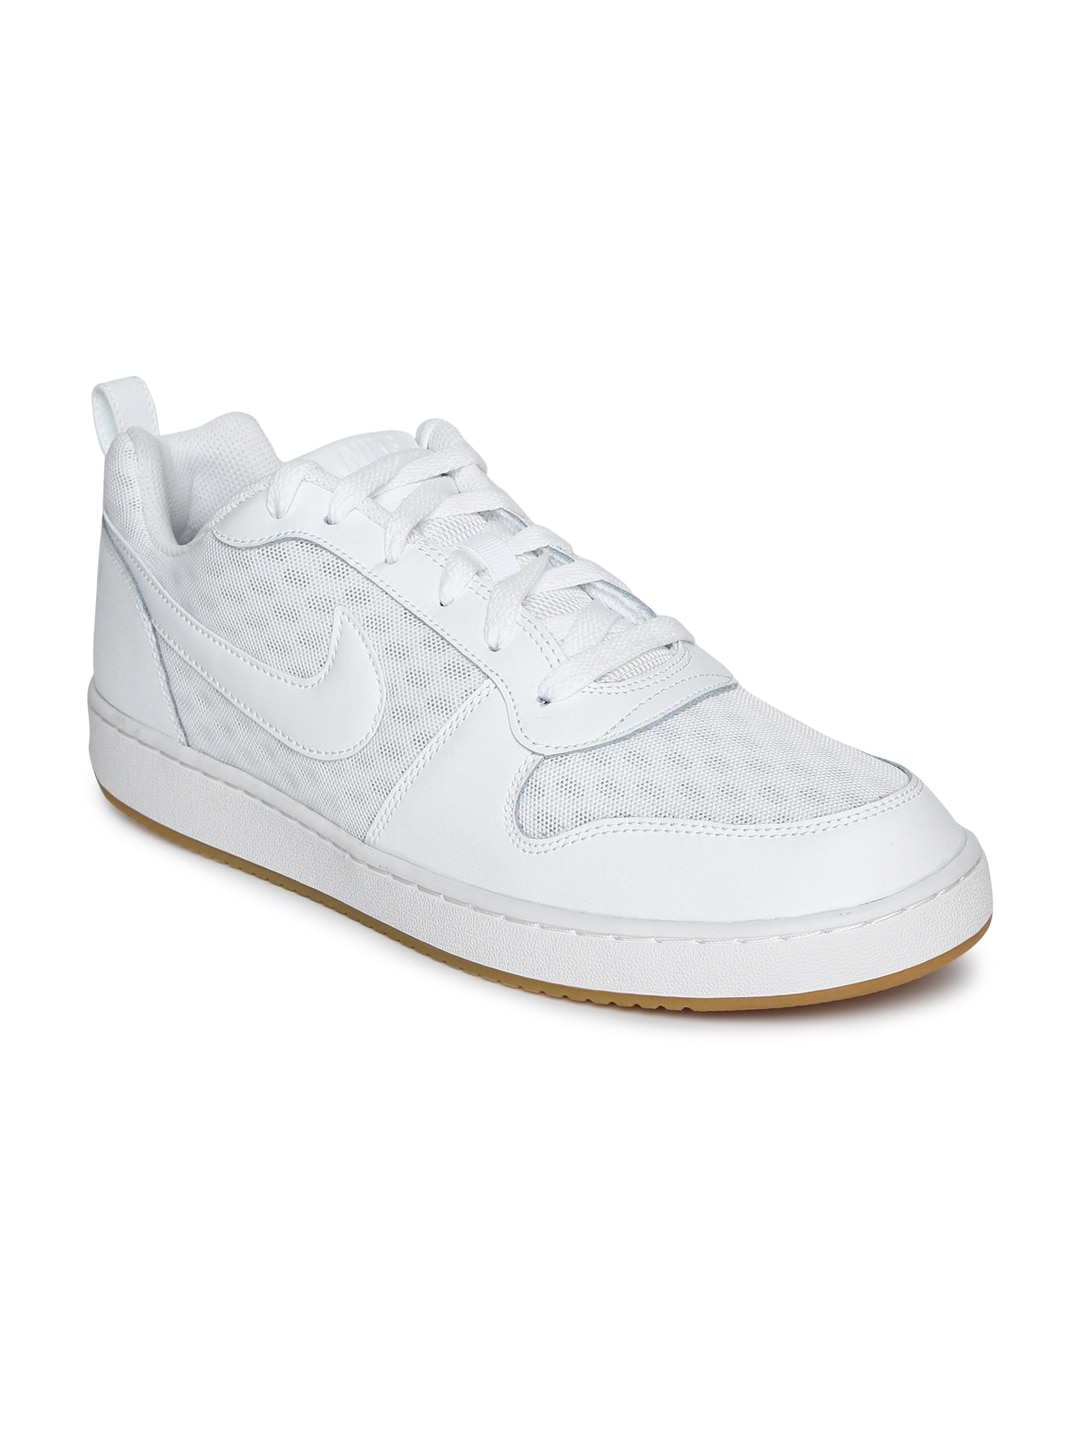 8ee1a9d0dcd72 Nike Court Borough Low White Sneakers for Men online in India at ...